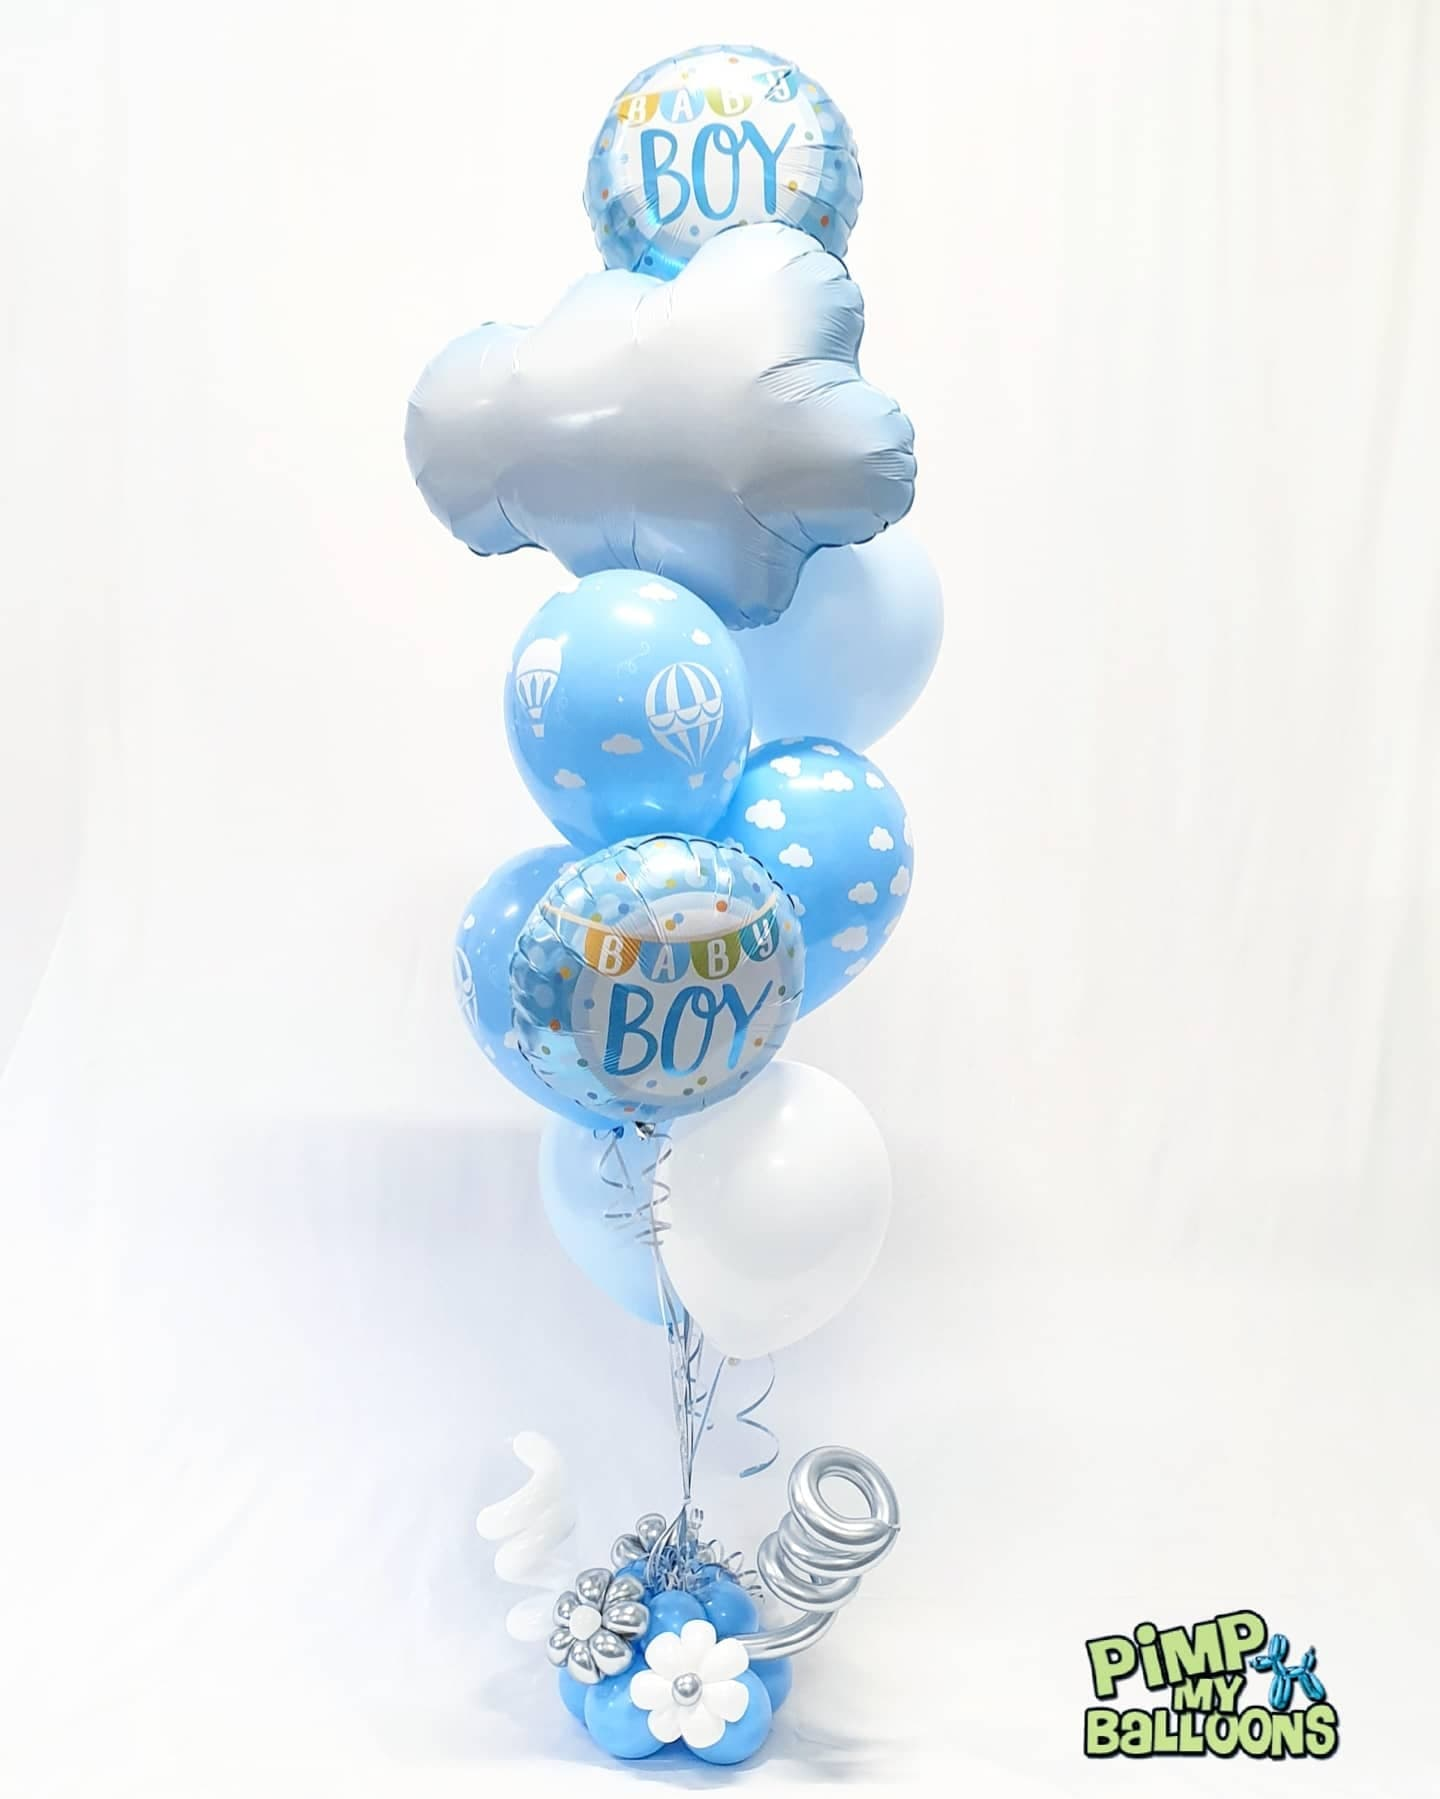 $85 - Baby Boy Bouquet - Clouds and Hot Air Balloons